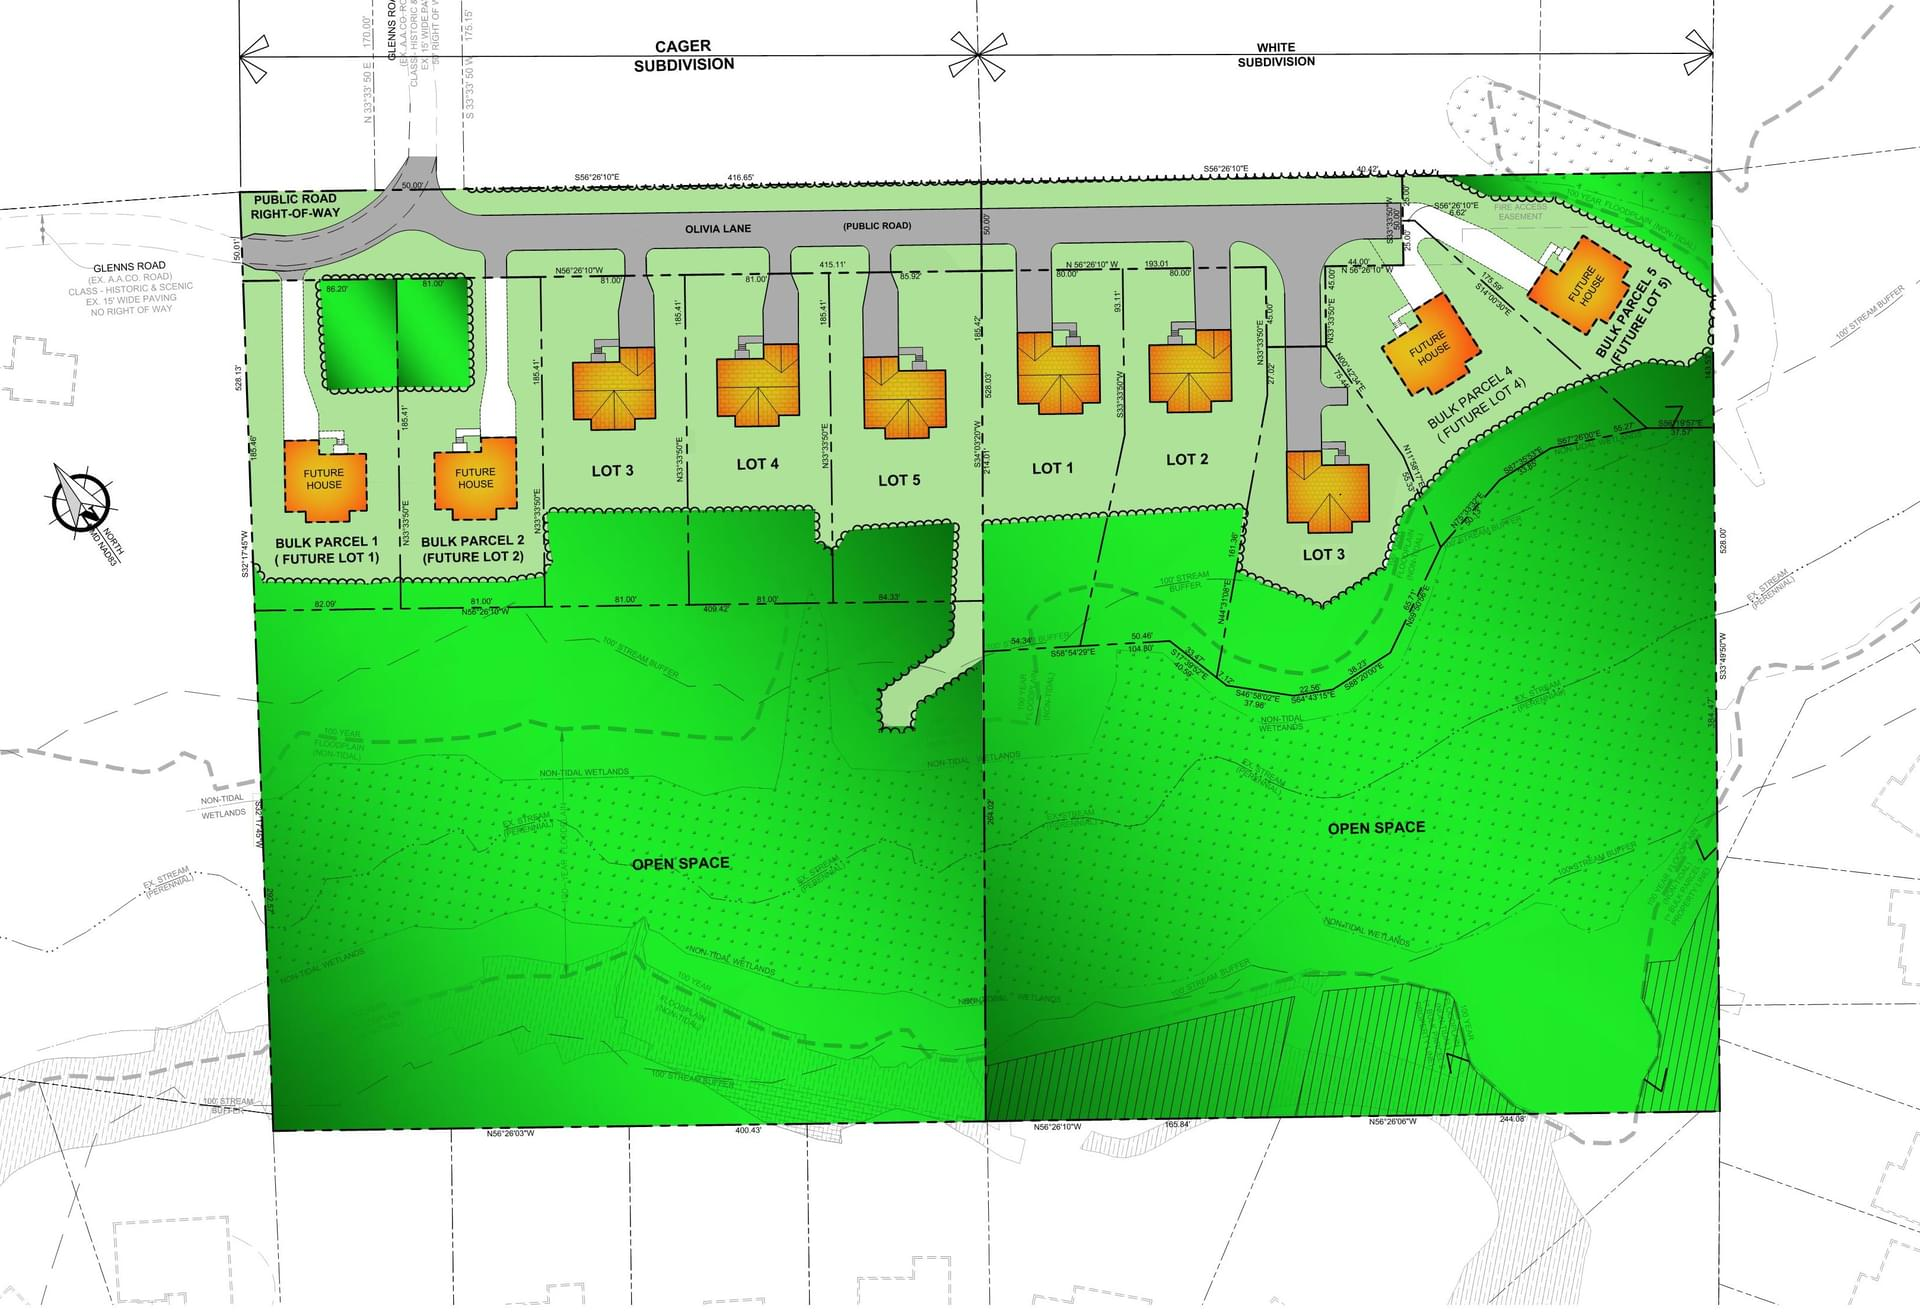 Cager and White Communities  - Site Plan